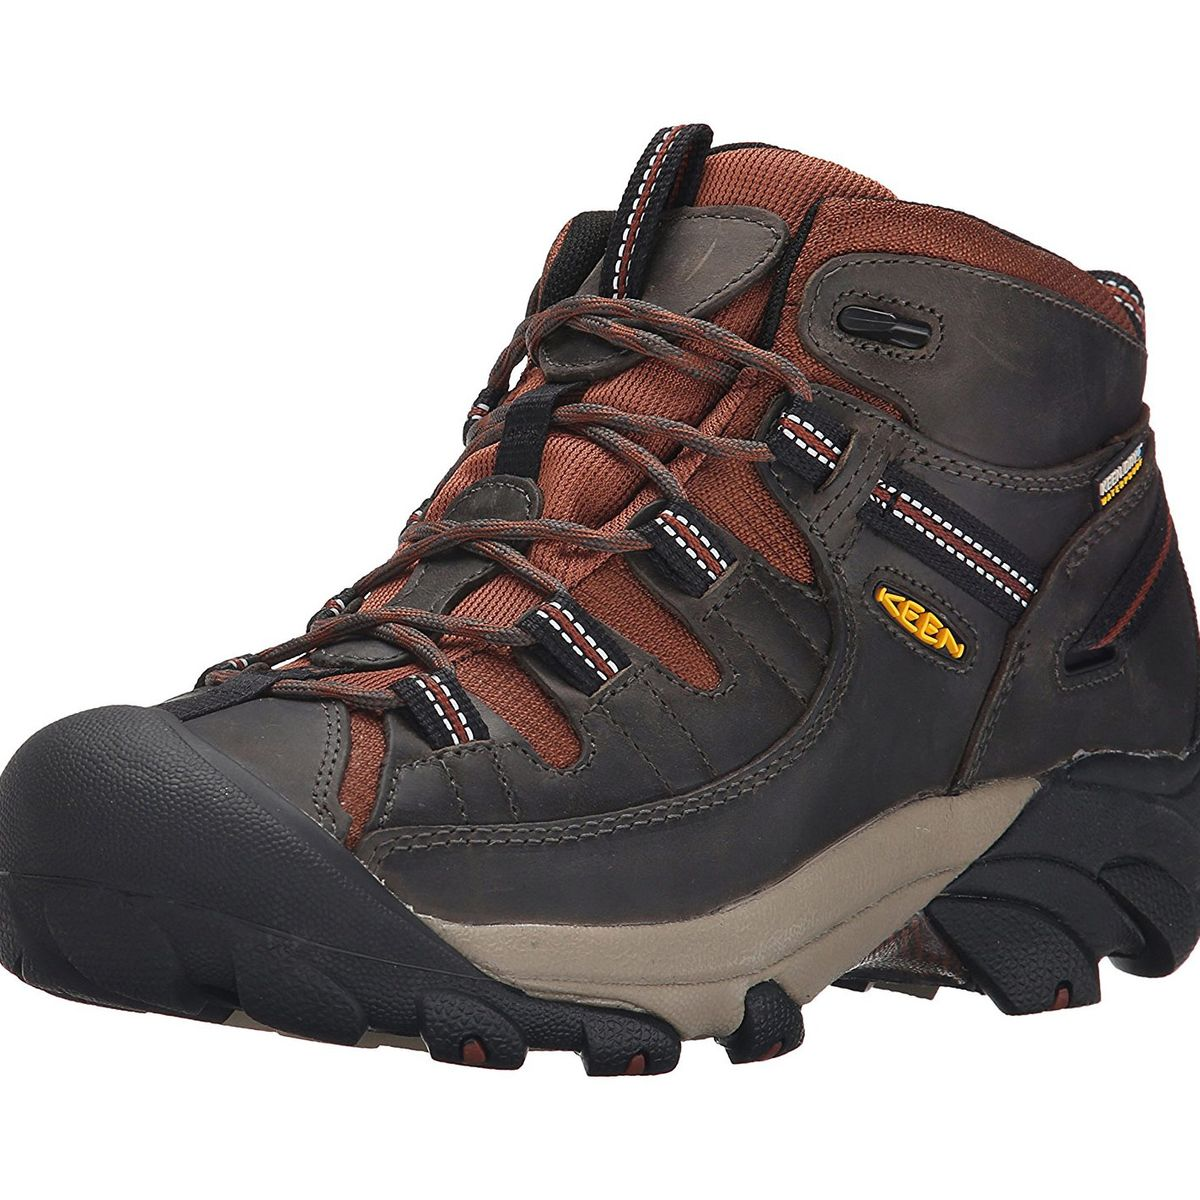 19 Best Hiking Boots for Men 2020 | The